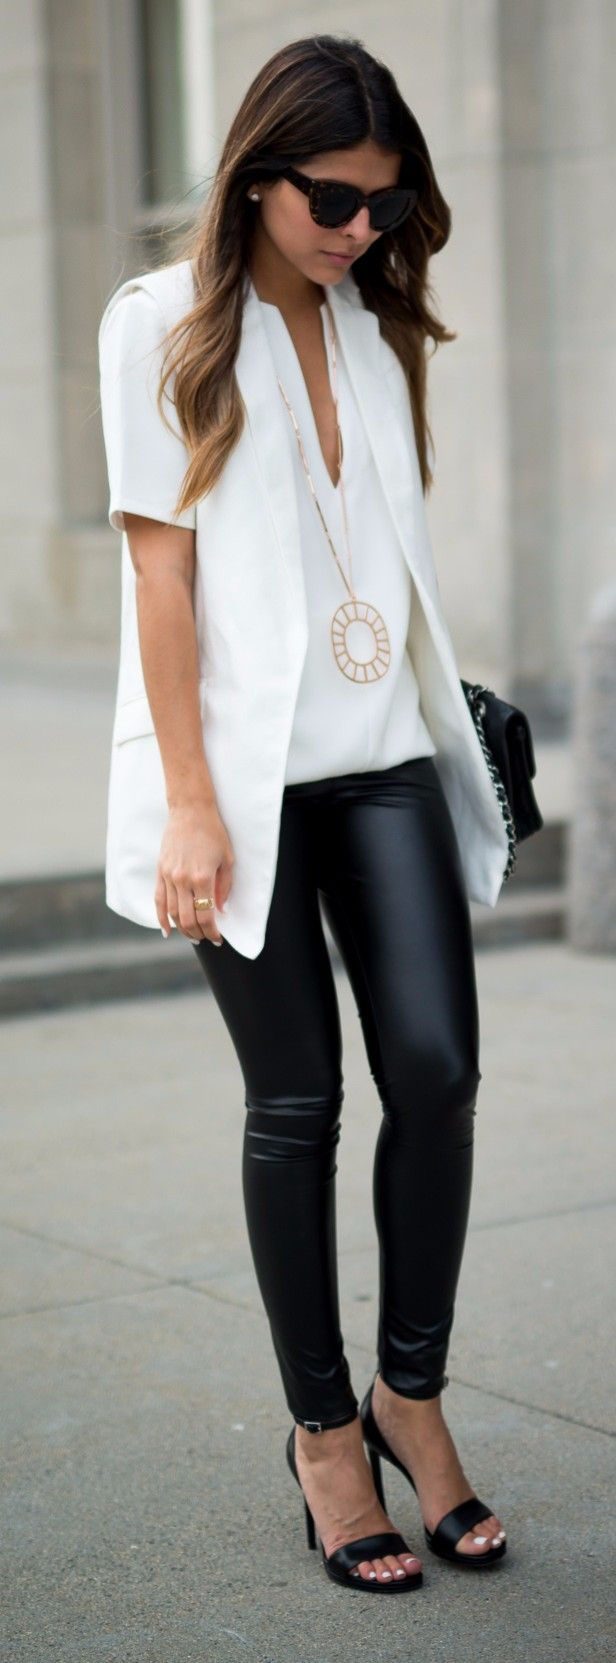 Black and white outfit to wear to the office